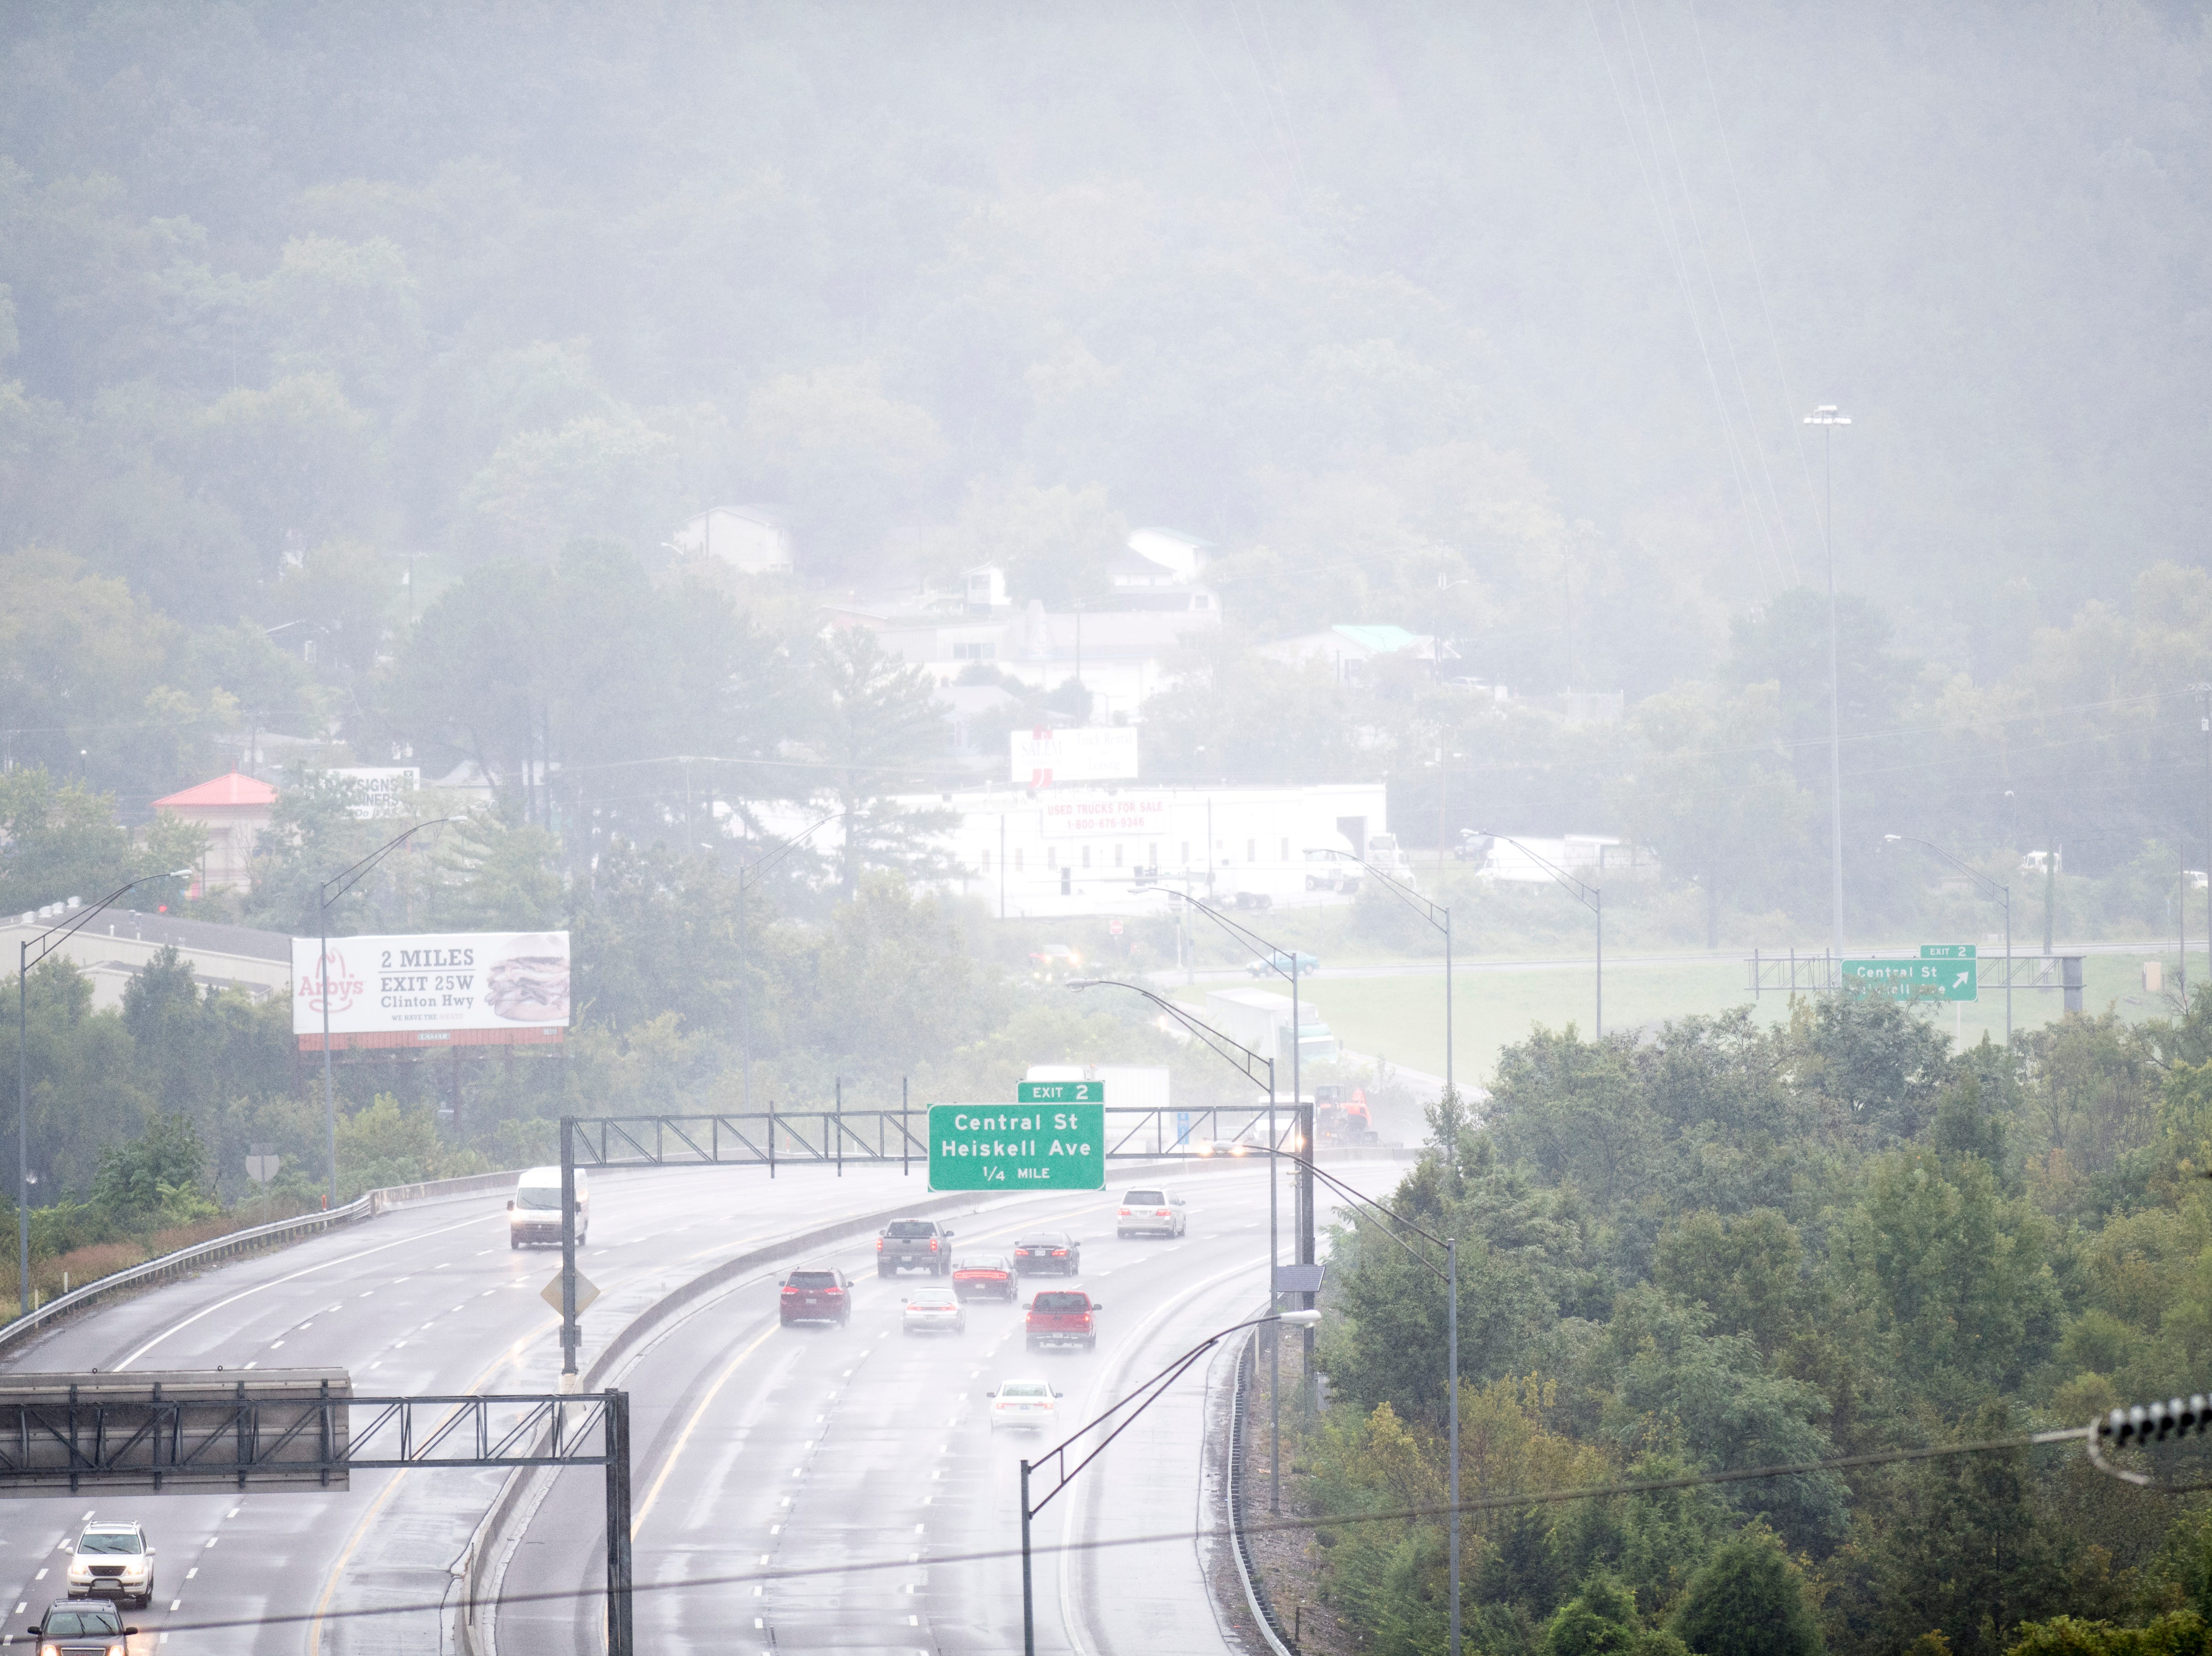 Heavy rains obscure the view of I-275 during an afternoon rain shower in Knoxville, Tennessee on Wednesday, September 26, 2018. A flood watch for the area was issued around 1pm until 7pm.